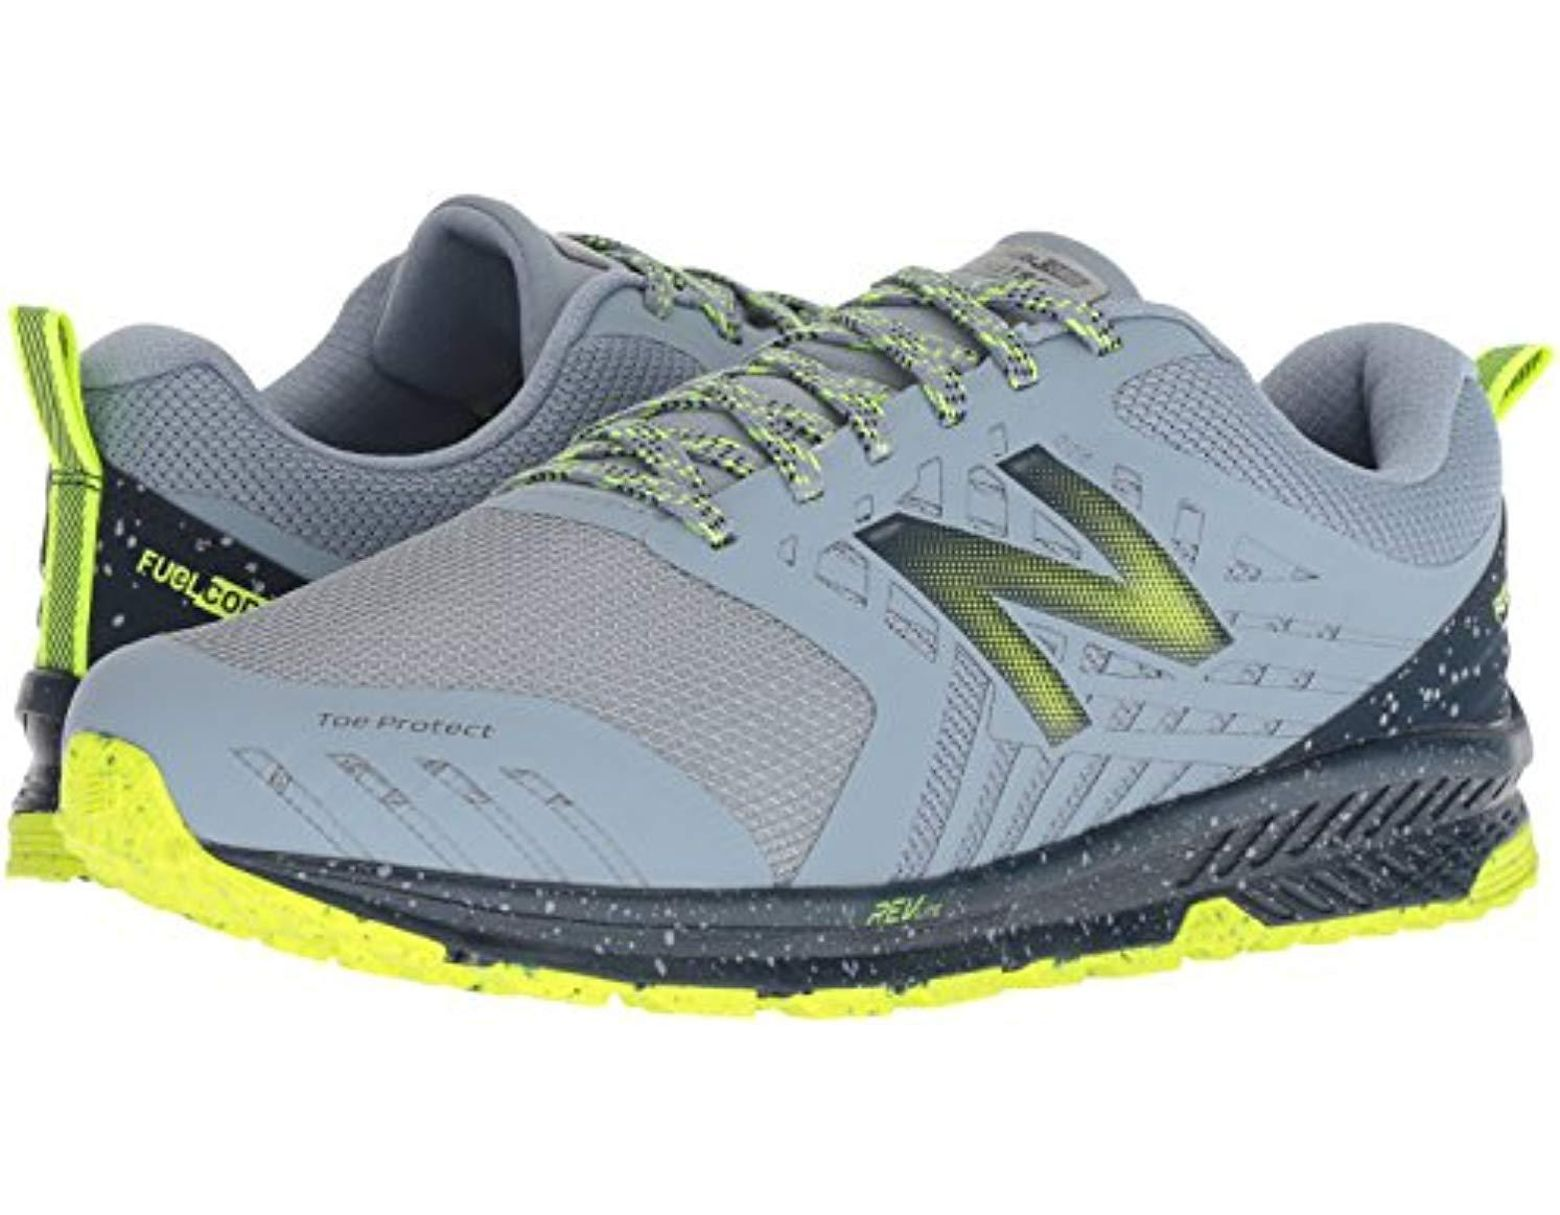 289a5ef31f581 New Balance Nitrel V1 Fuelcore Trail Running Shoe for Men - Save 30% - Lyst